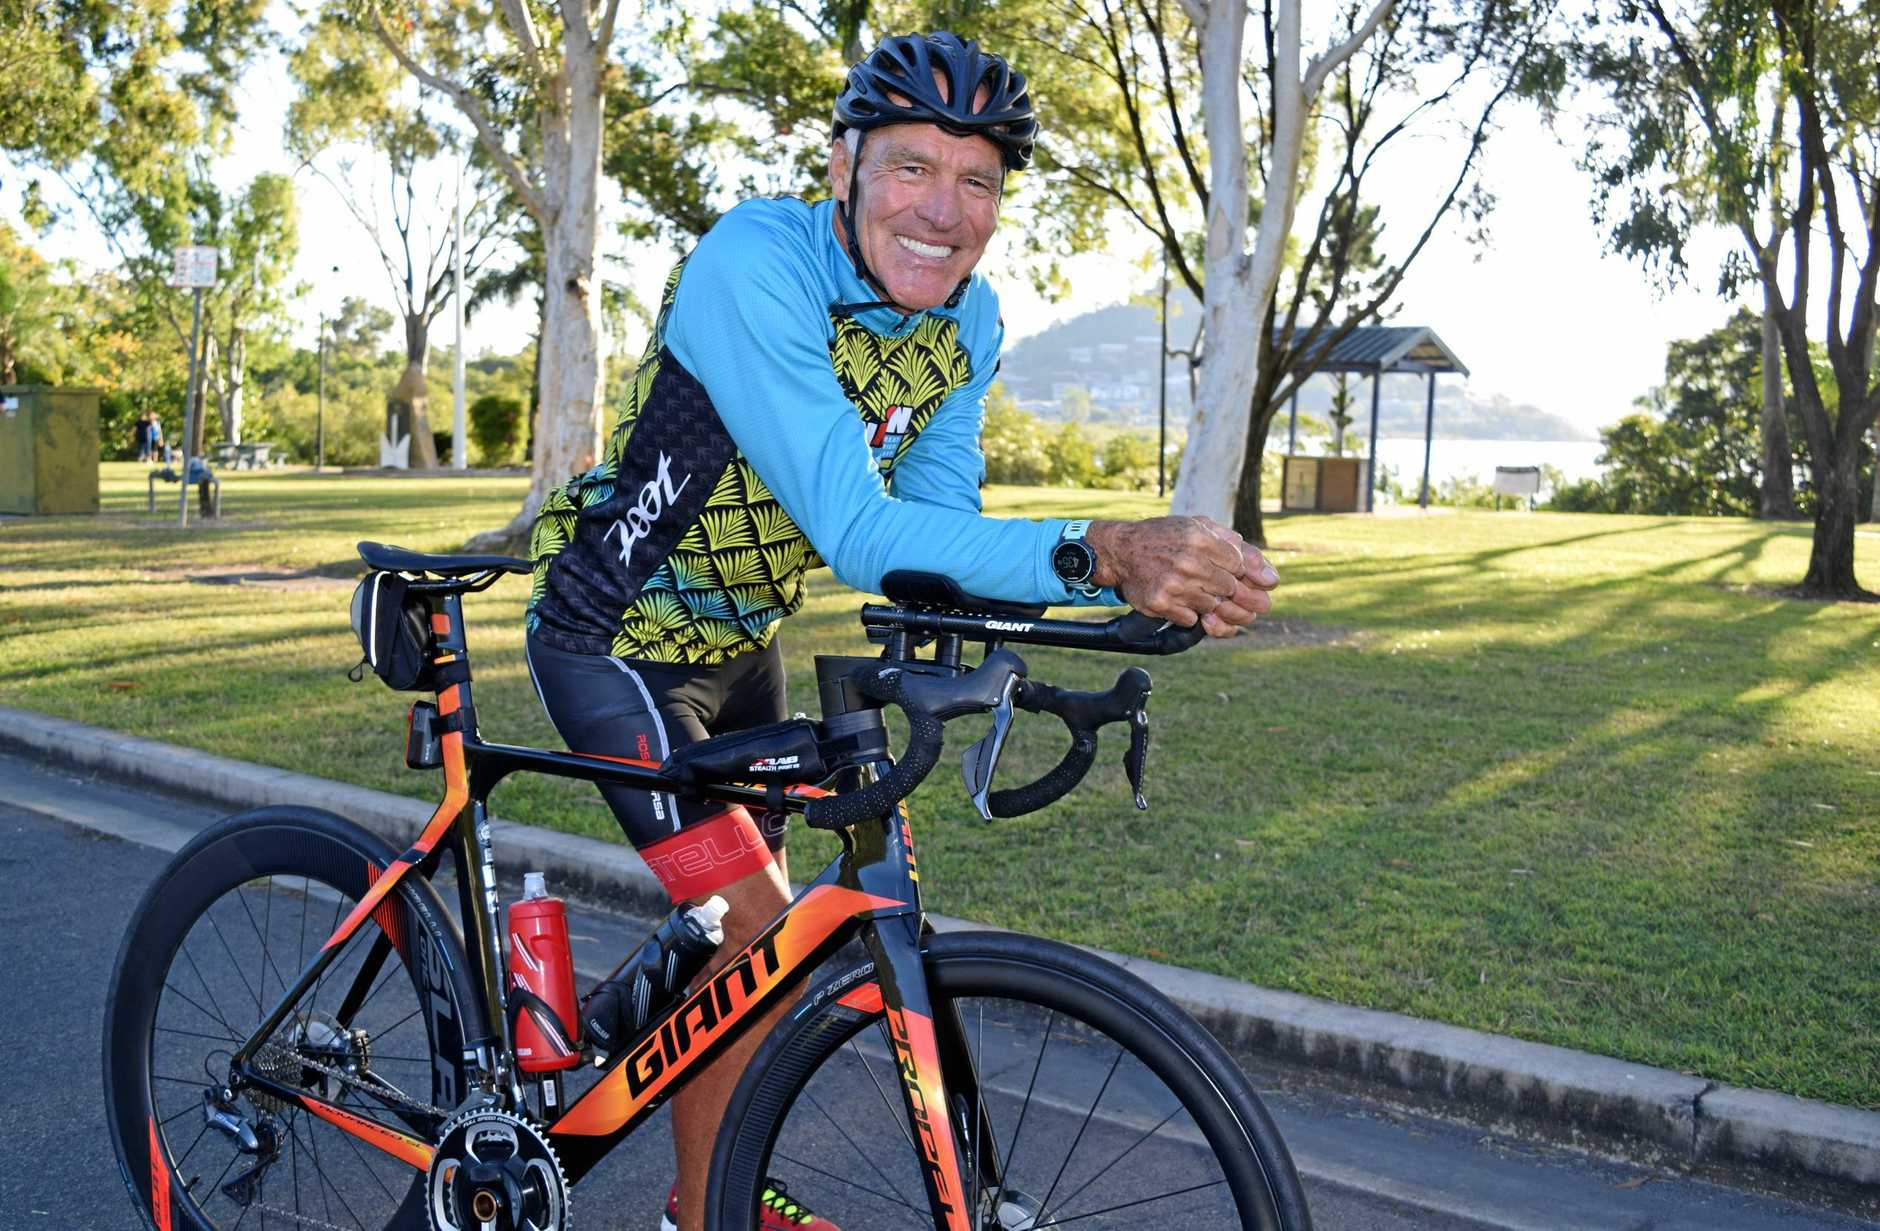 Airlie Beach's Michael Kimpton has just represented Australia in the 65-69-year-old group in the Ironman 70.3 World Championship in Nice, France.